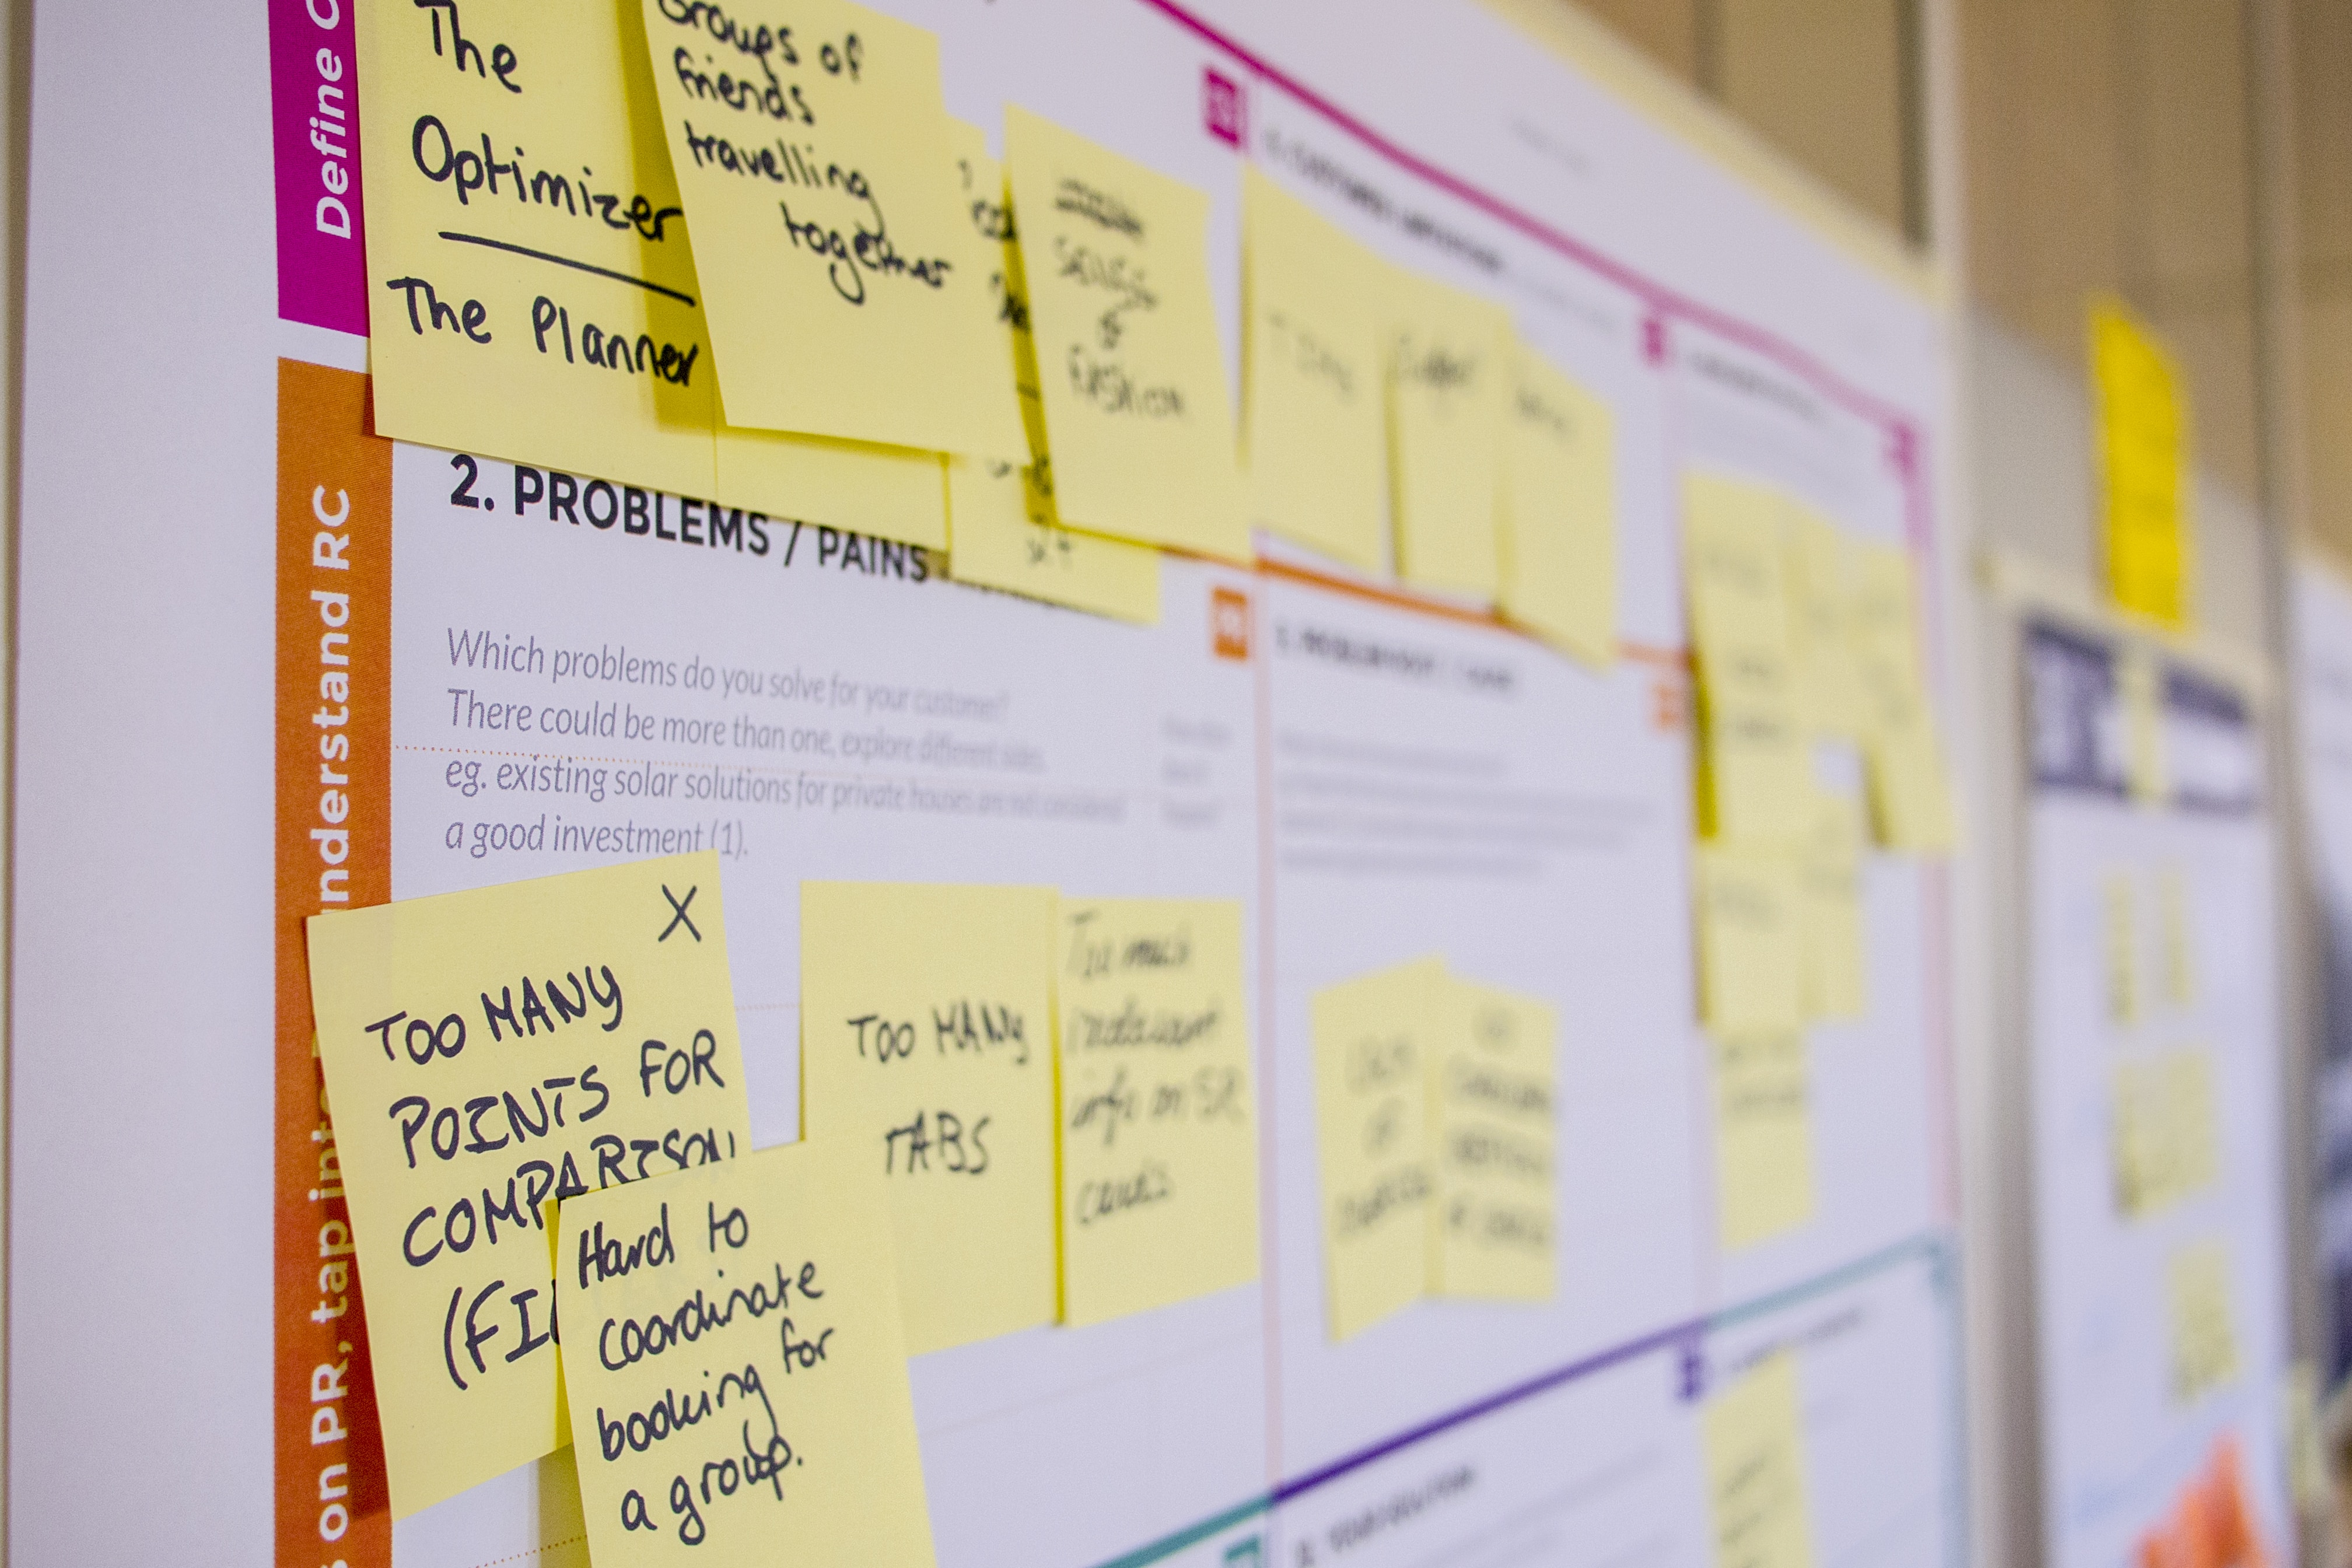 Voxel bets on Agile methodologies and founds Partnos by Voxel